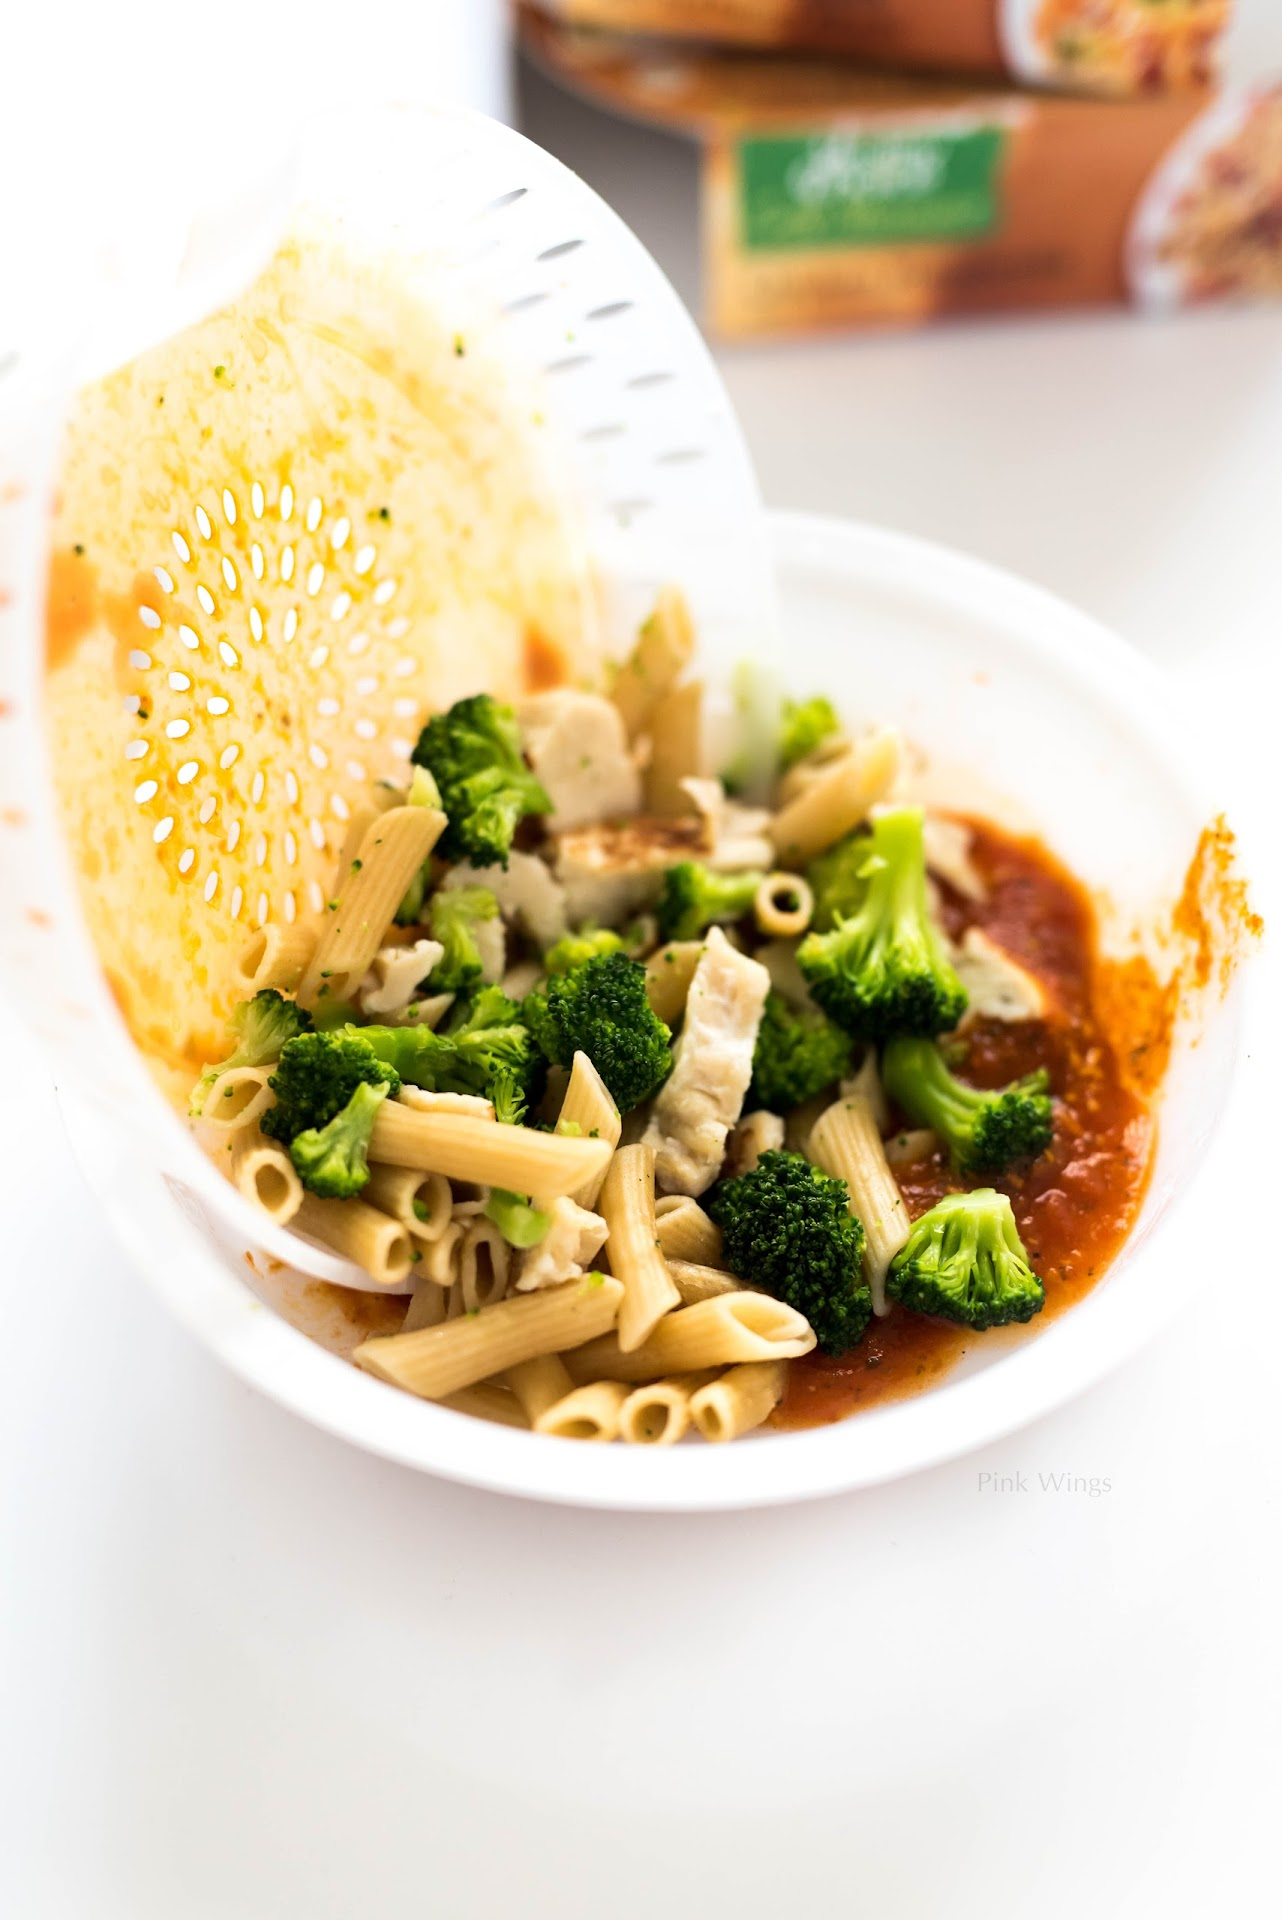 quick easy meal planning, meal ideas, ideas for two, busy moms, quick easy meals for 4, healthy choice cafe steamers review, penne marinara, healthy pasta, chicken marinara penne, pasta dish, broccoli pasta dish, best tasting frozen meals